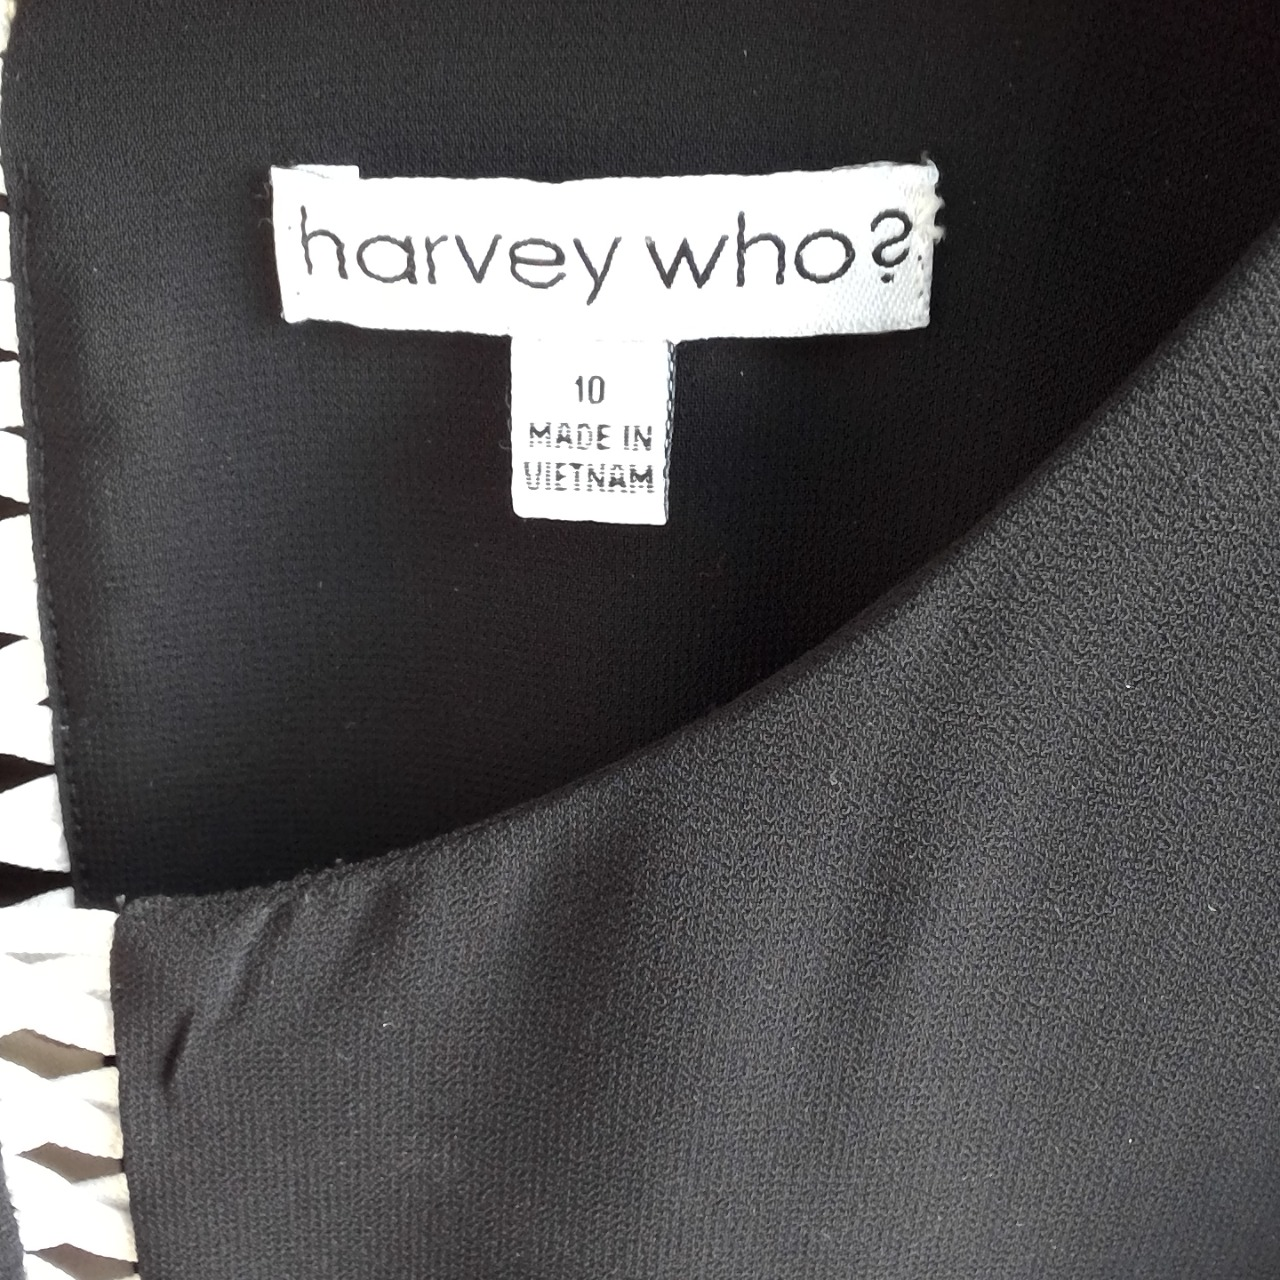 Womens HARVEY WHO Long Sleeve Top Corporate /Business Black /Cream Size 10